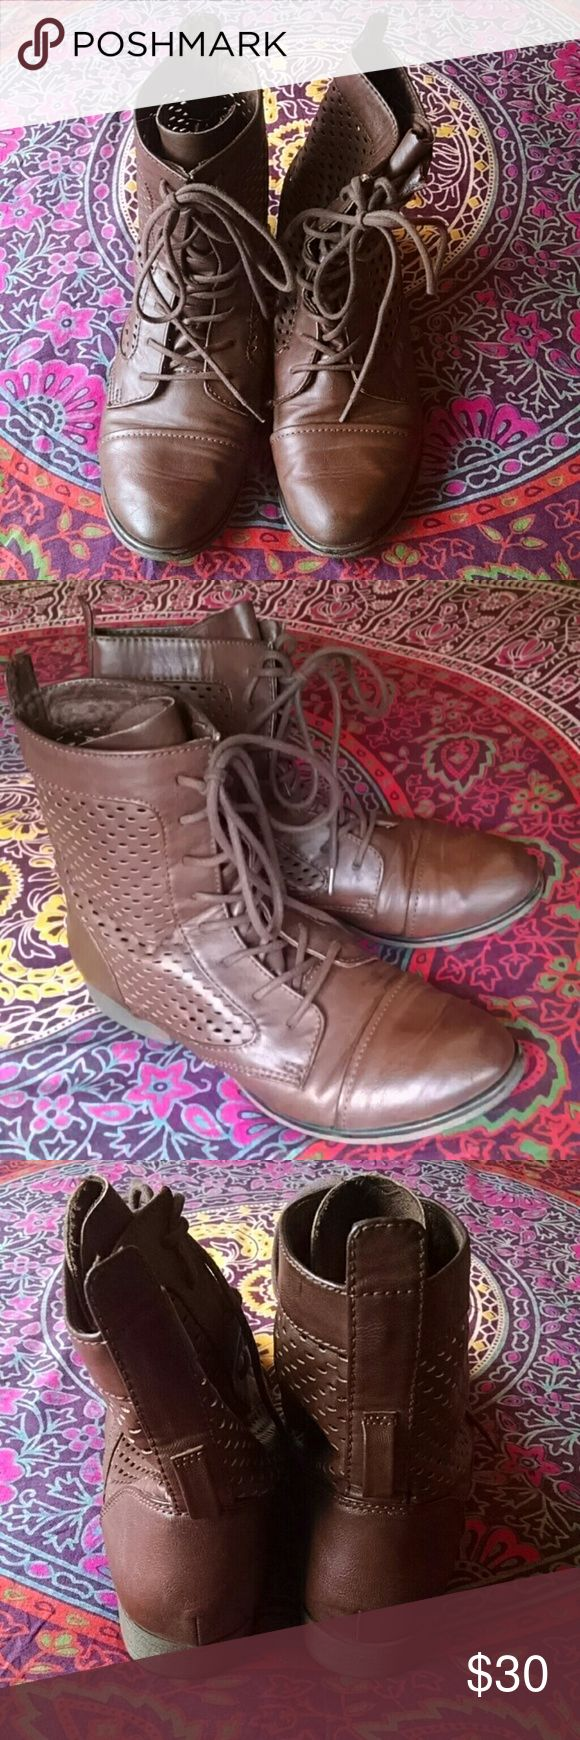 Steeve Madden eyelet boots Great condition brown eyelet combat boots, super cute with colored socks! Steve Madden Shoes Combat & Moto Boots